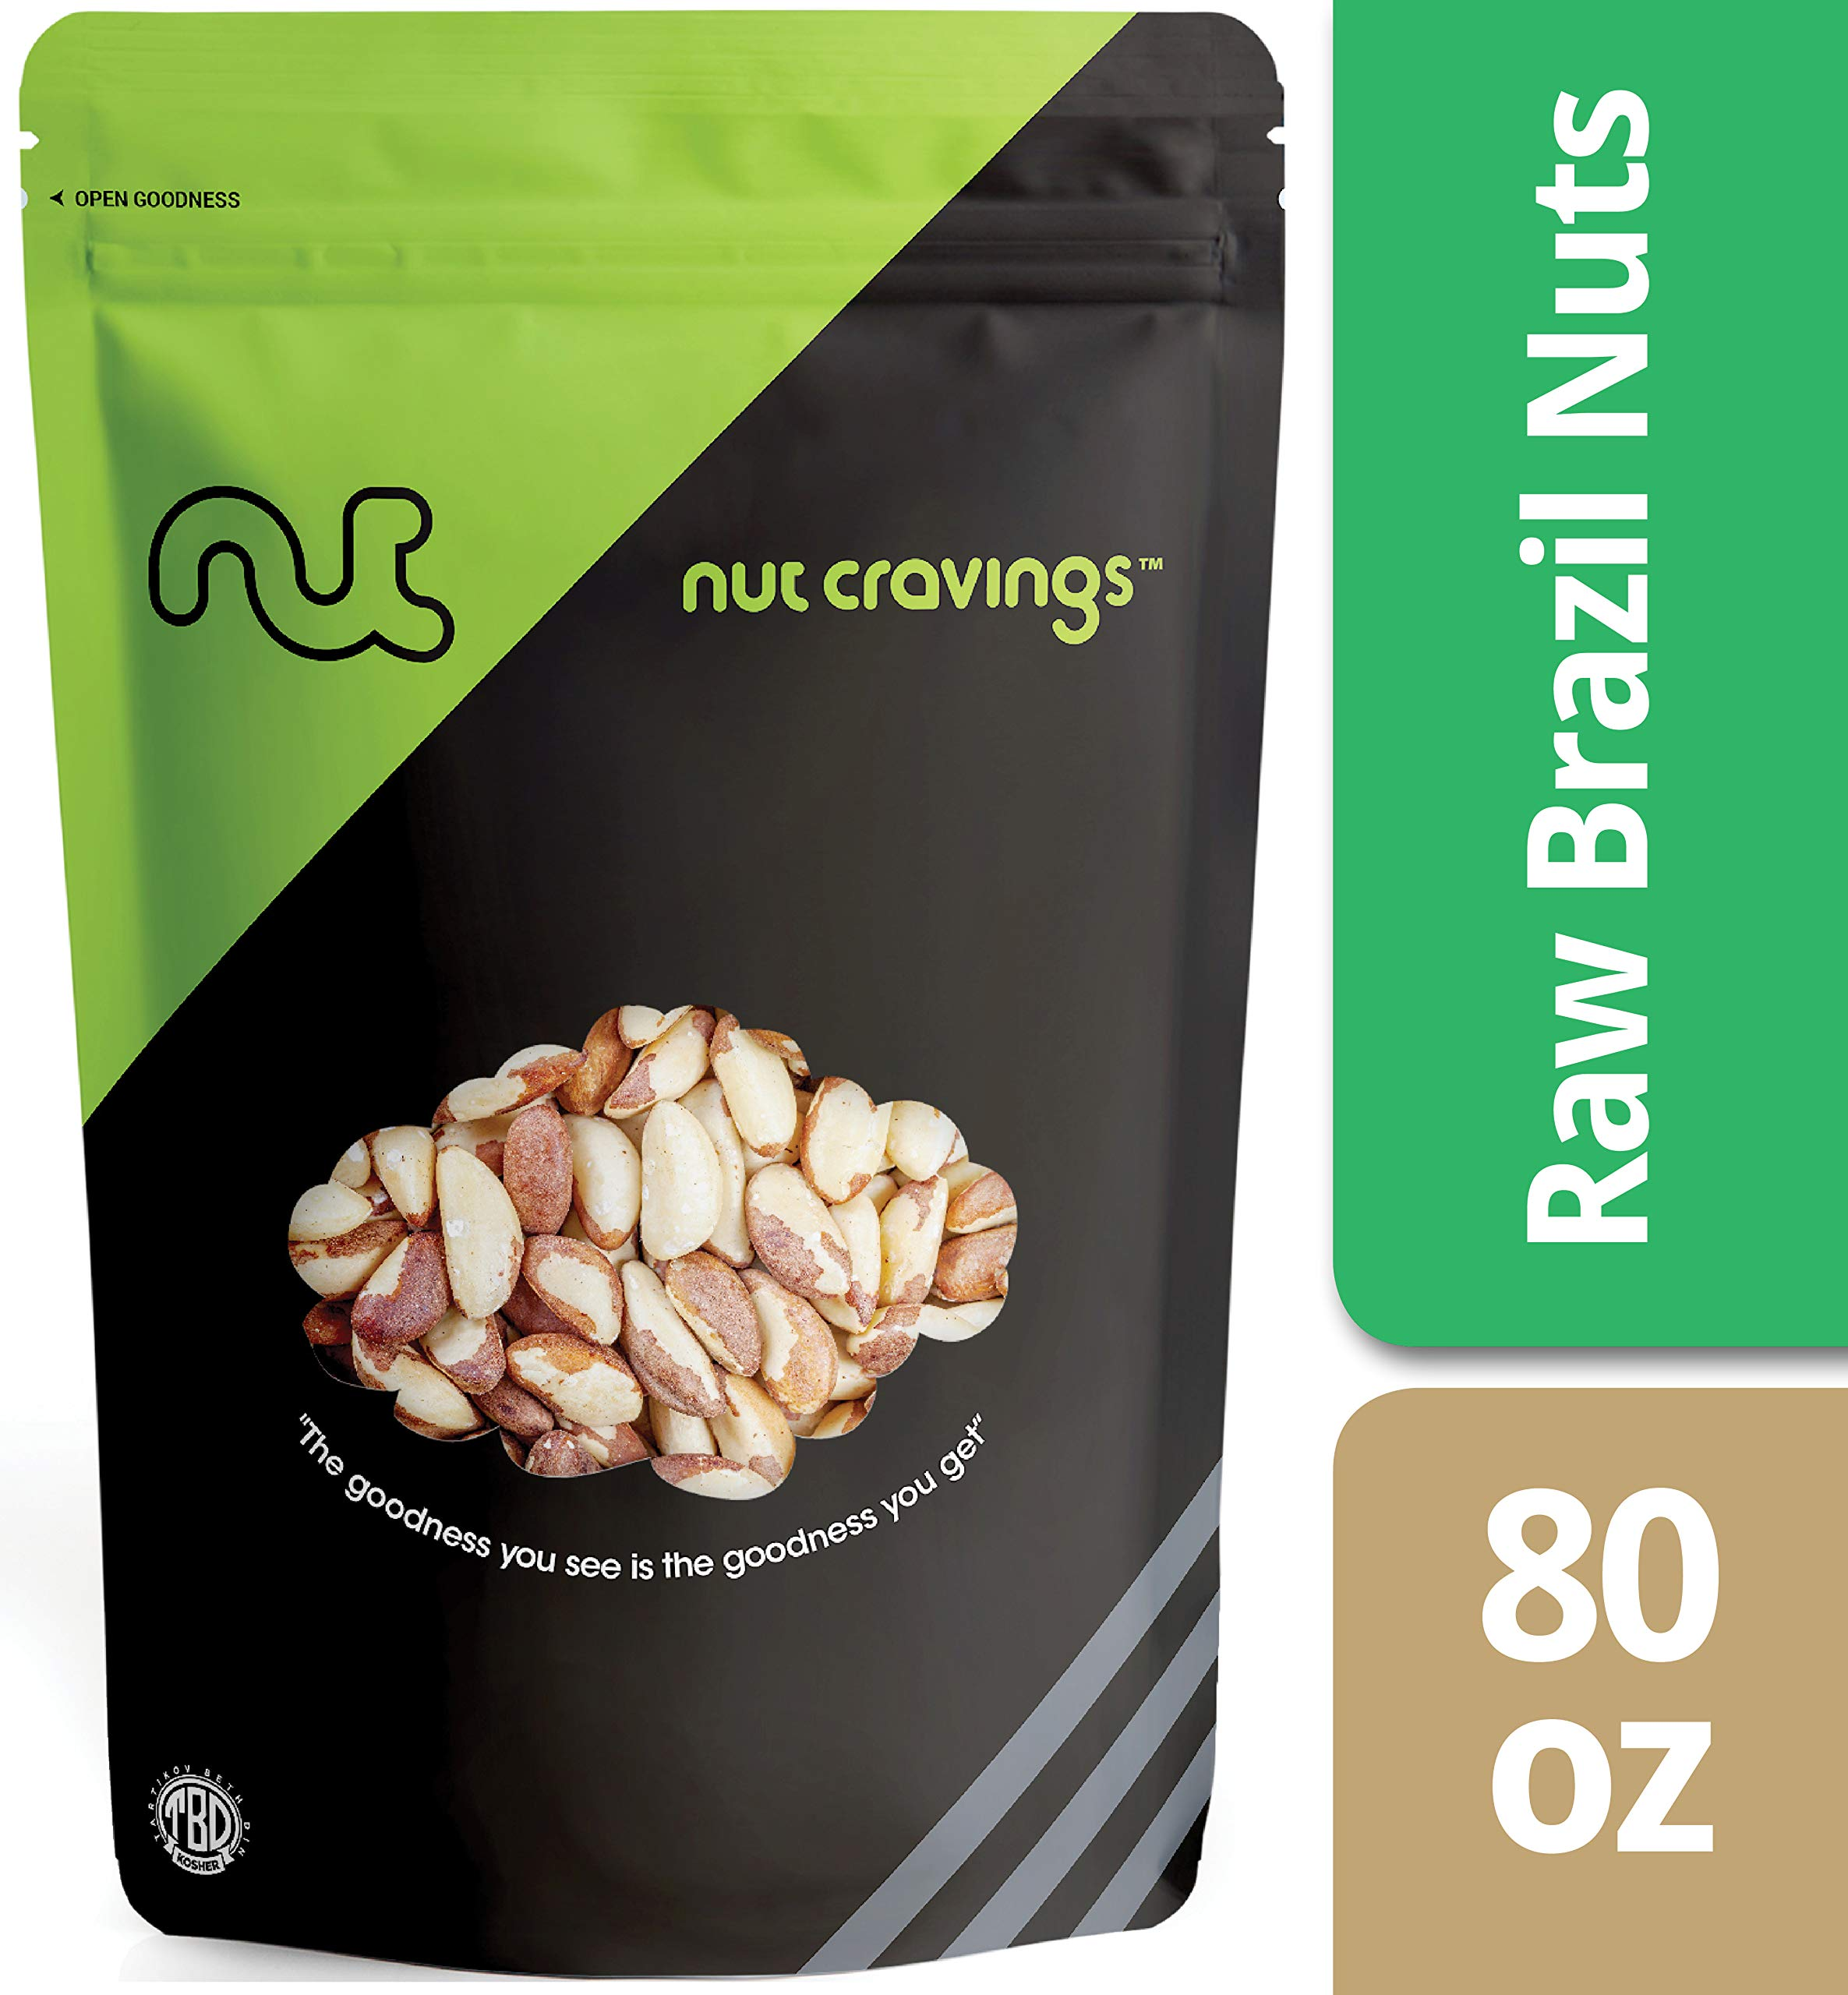 Nut Cravings Raw Compare To Organic Brazil Nuts (5 Pounds) – Whole, Unsalted, No Shell Brazilian Nuts – 80 Ounce by Nut Cravings (Image #1)